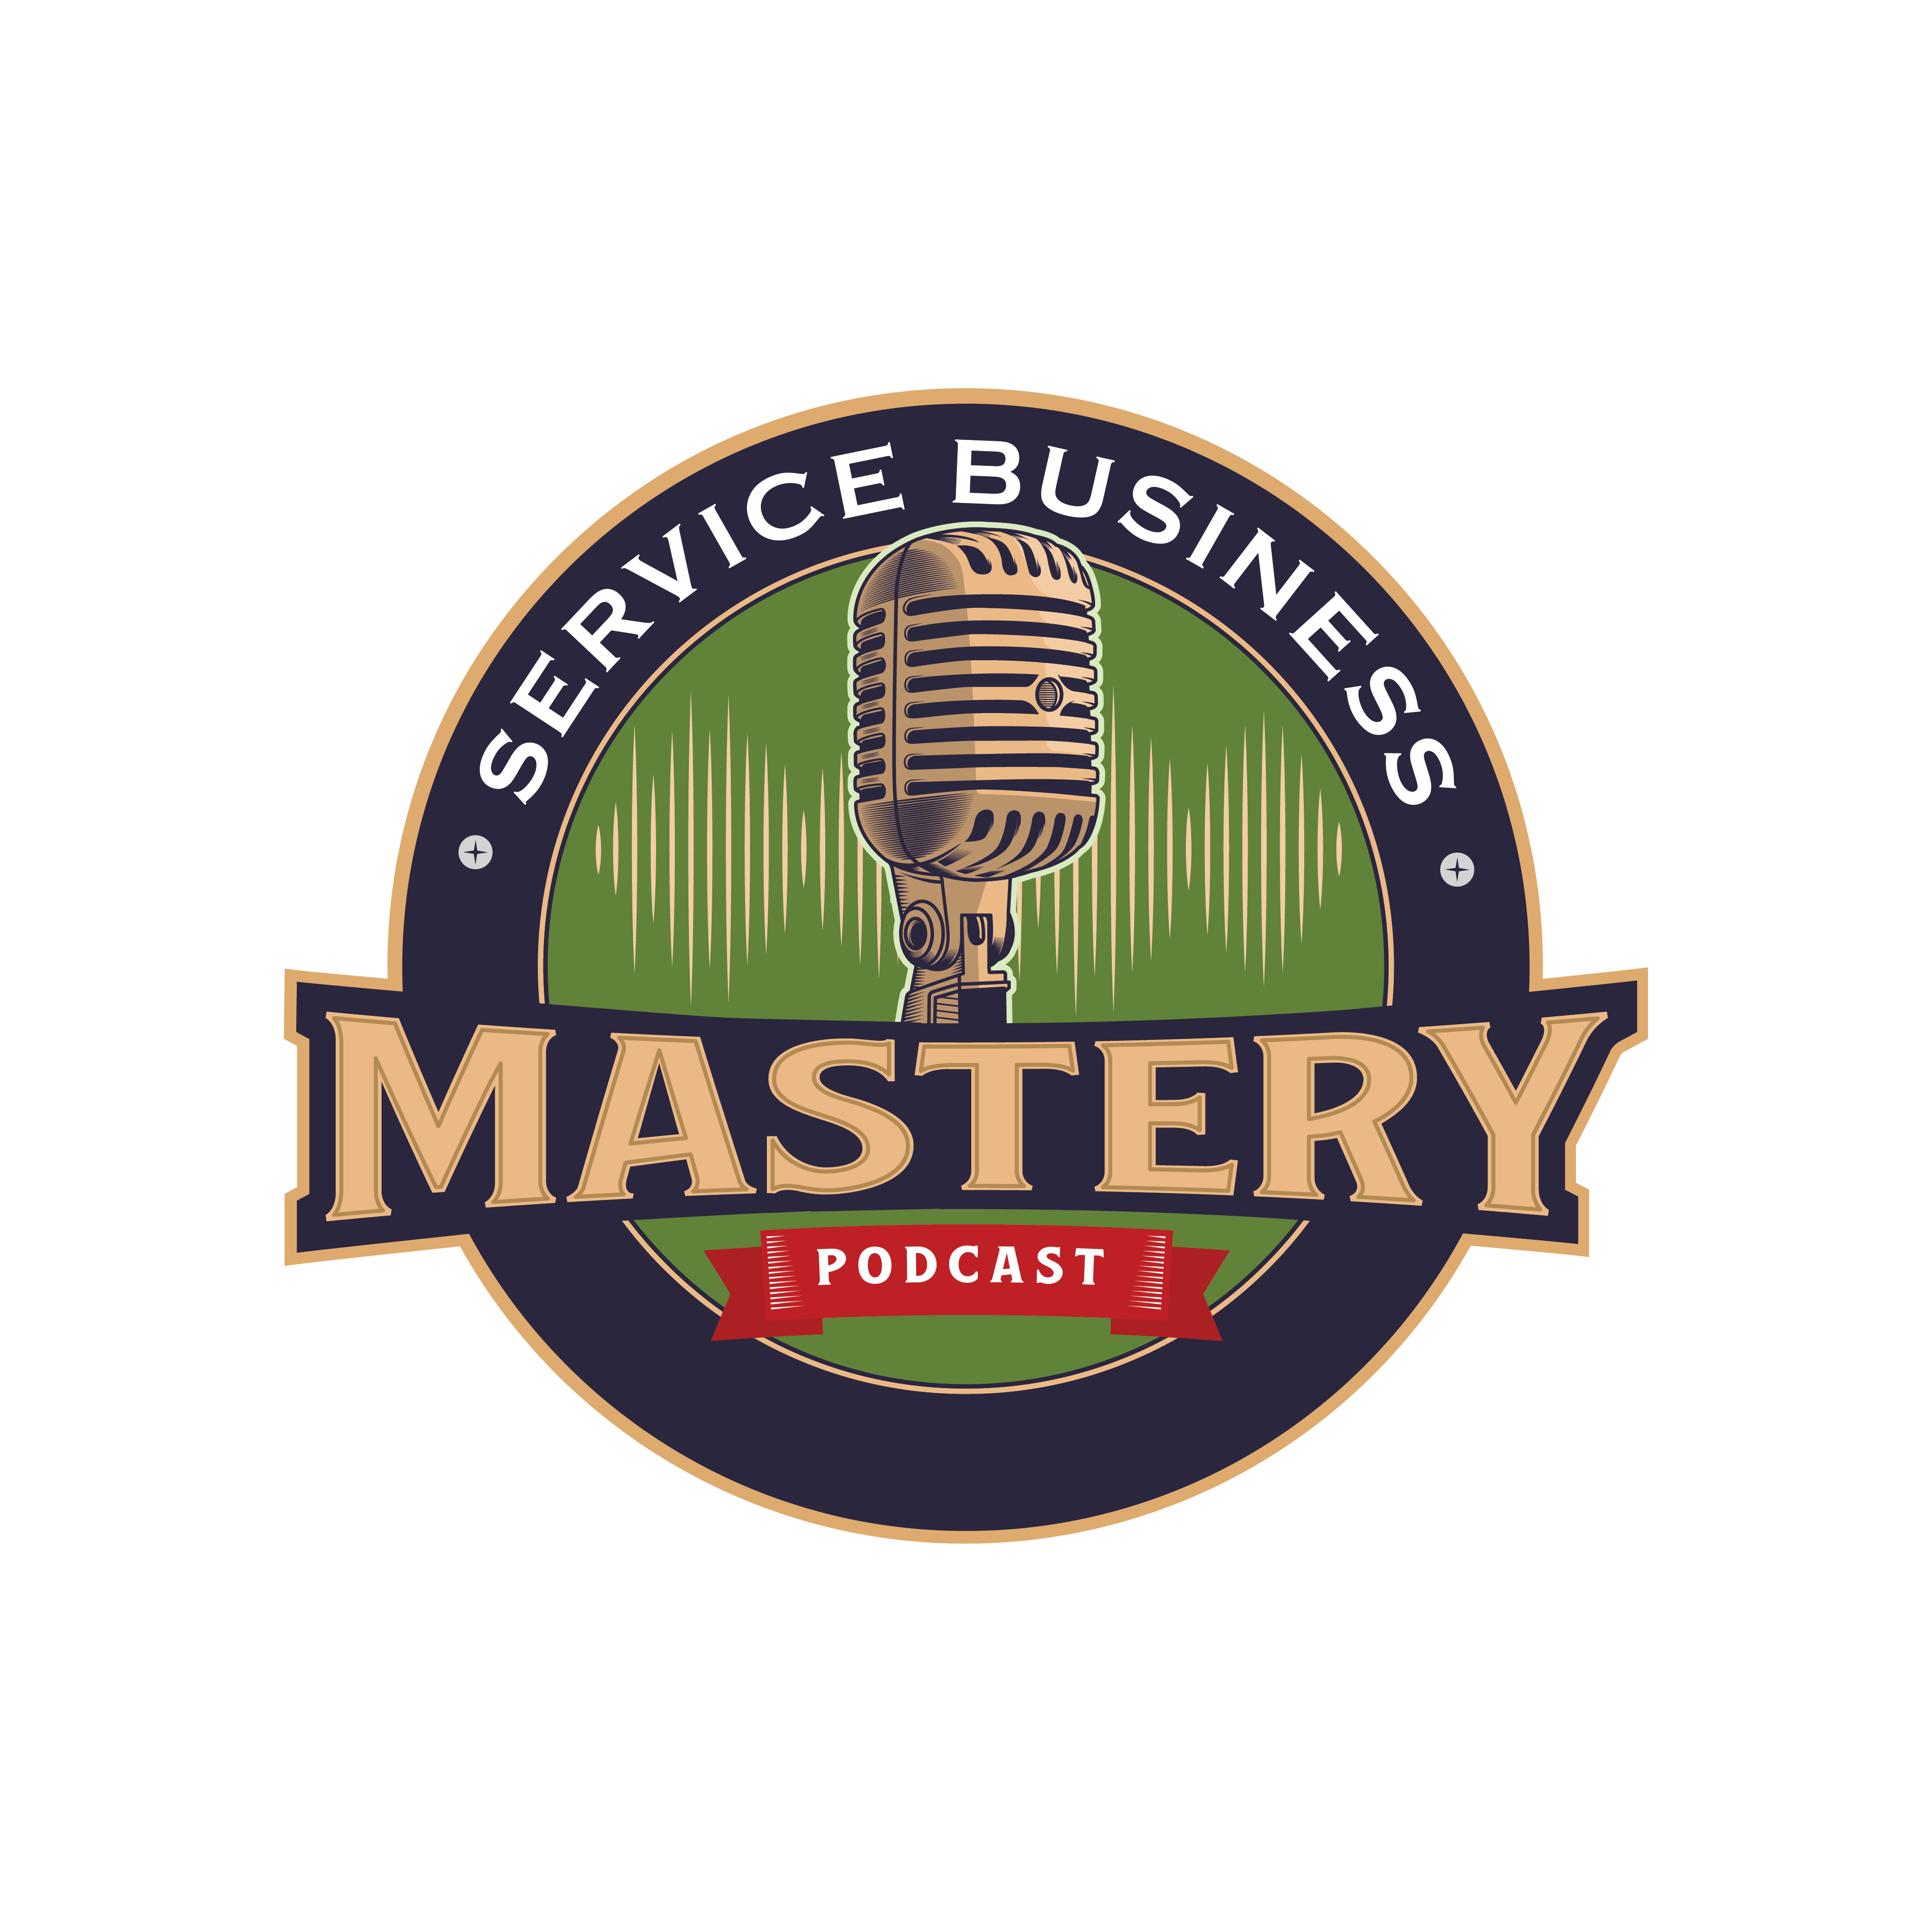 Service Business Mastery - Business Tips and Strategies for the Service Industry show art